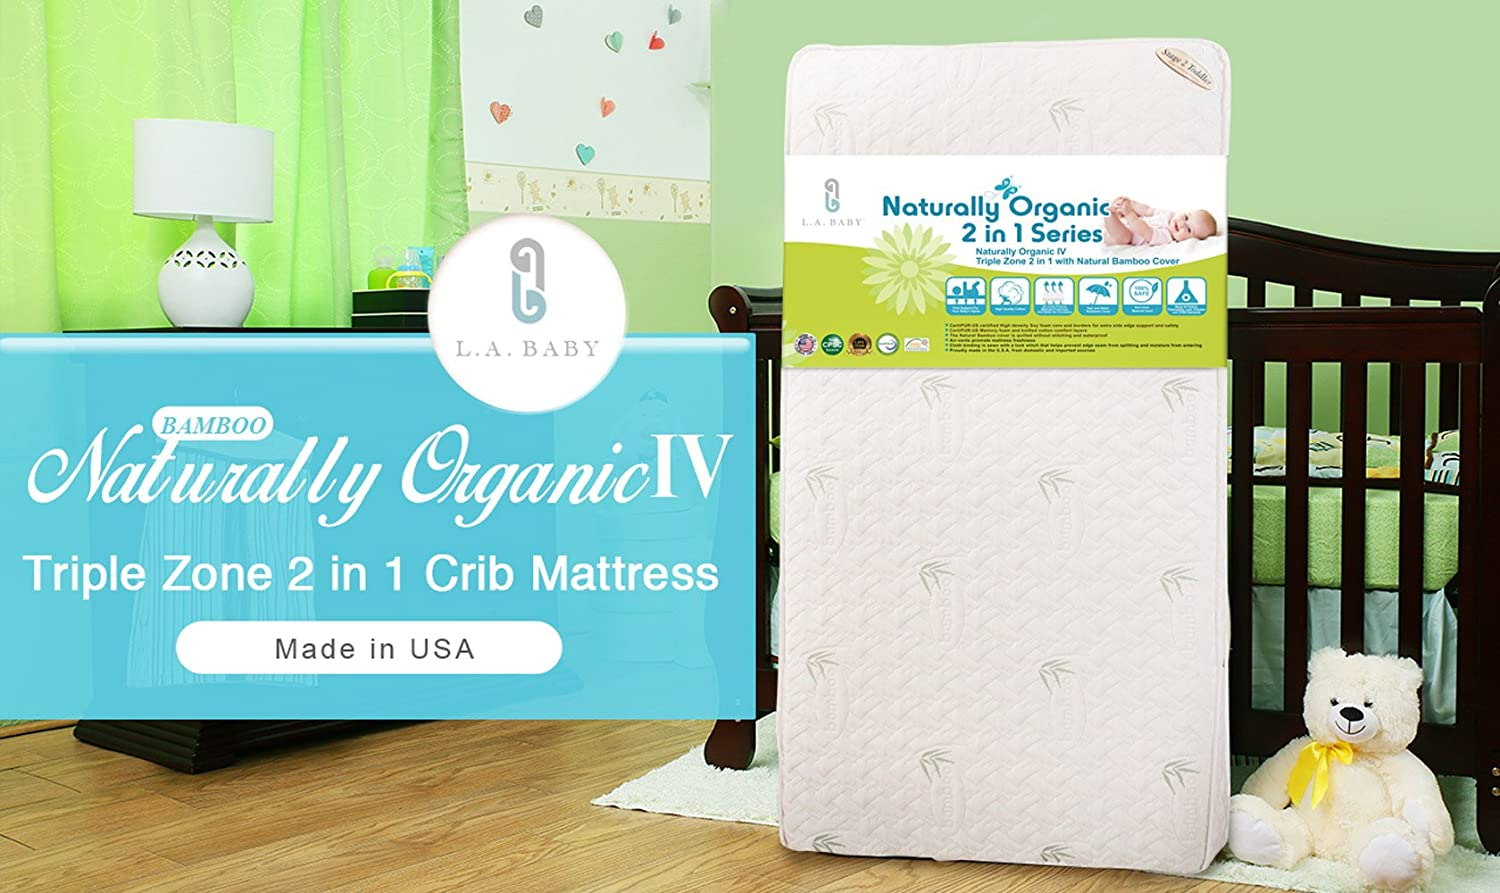 Baby crib mattress amazon - Amazon Com La Baby Natural Iv Triple Zone 2 In 1 Soy Foam Crib Mattress With Blended Visco Bamboo Quilted Cover Crib Mattresses Baby